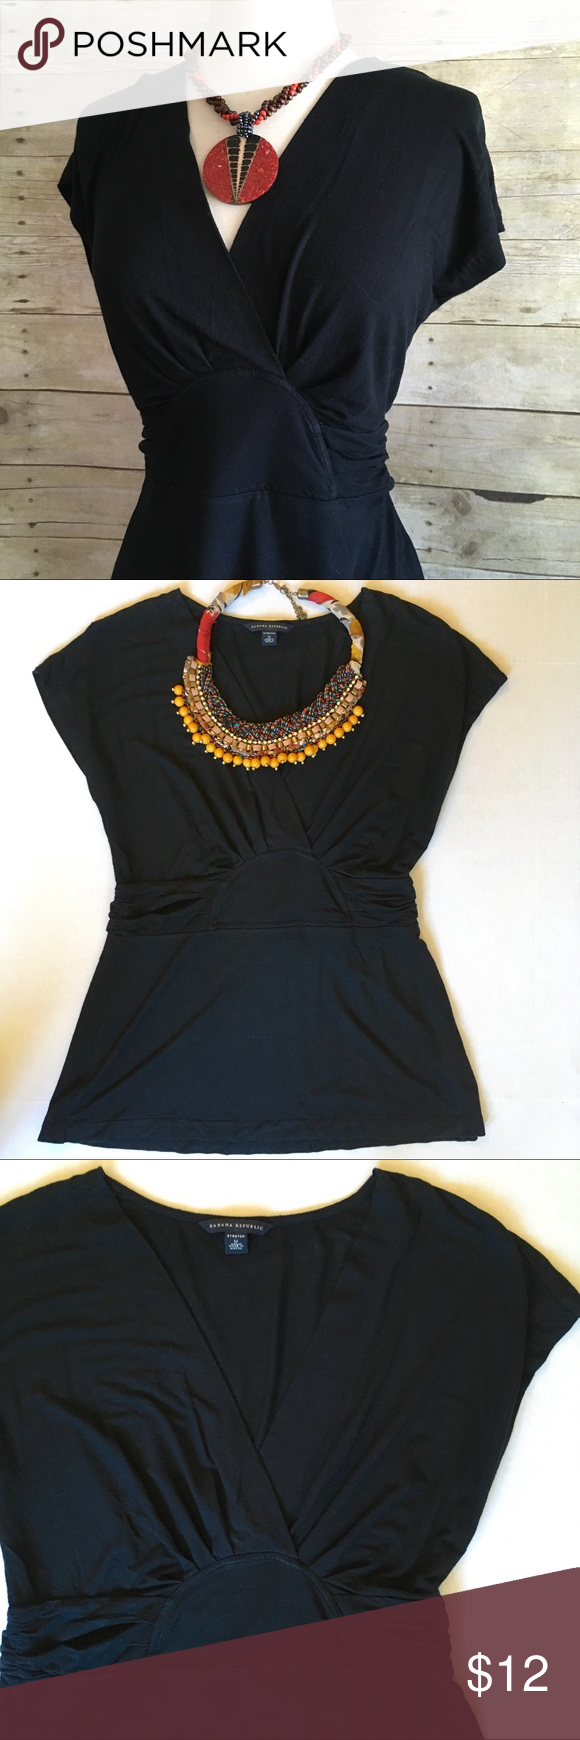 """Banana Republic wrap front black top Faux wrap front with accentuated empire waist. So soft and stretchy. A classic piece that can be easily dressed up or down. 95/5 modal, spandex. Gently loved. 27""""L. 18.5"""" bust laying flat. Size medium. Banana Republic Tops"""